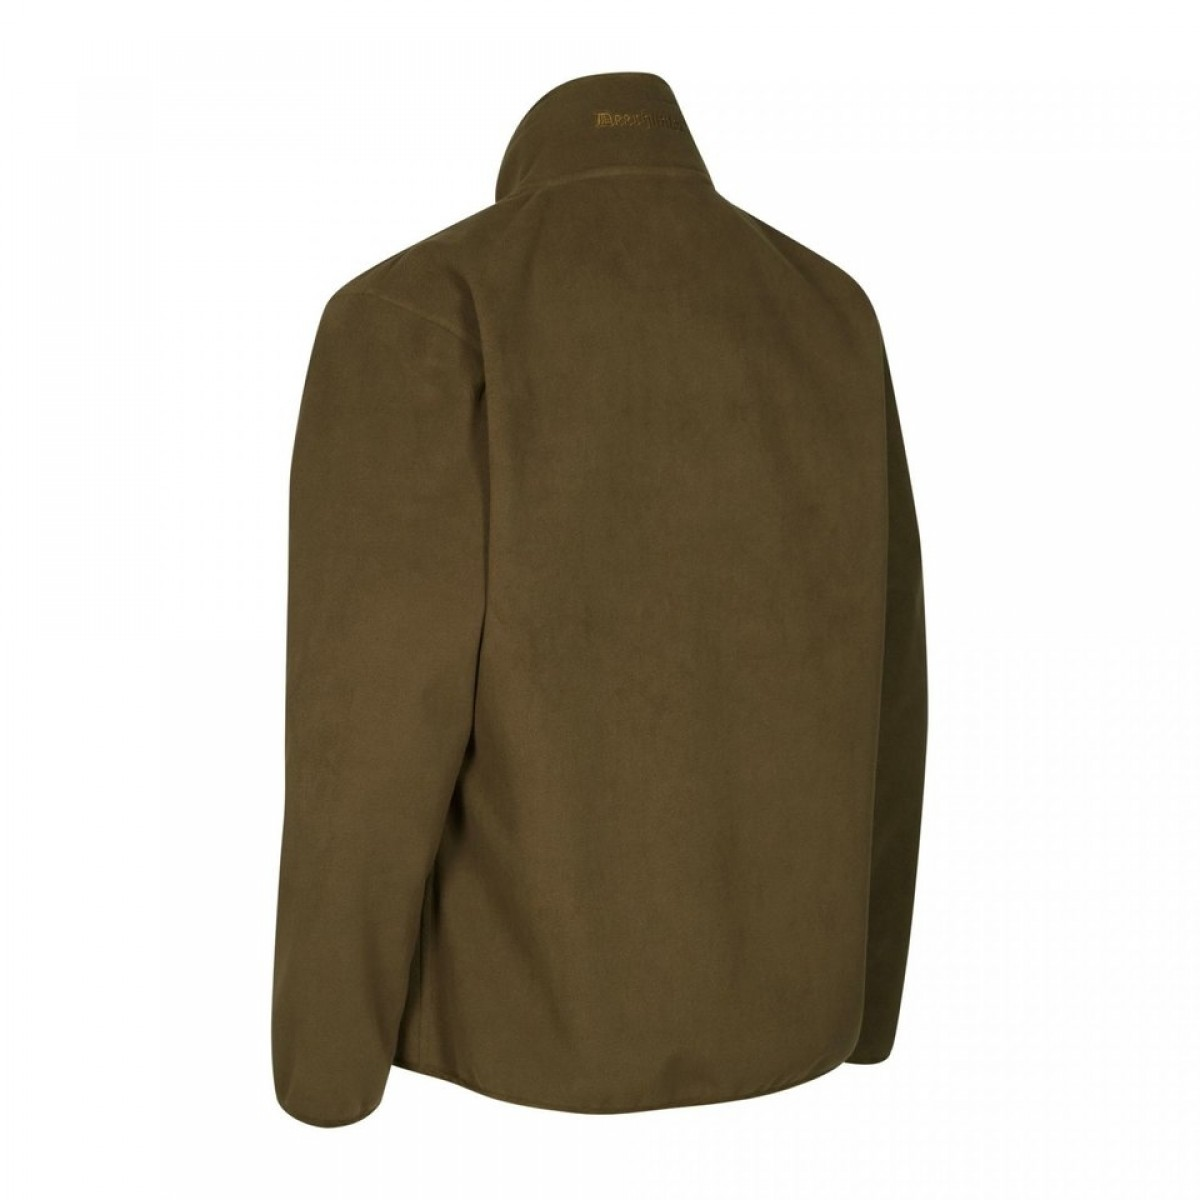 Gamekeeper Fleece Jakke Vendbar-31